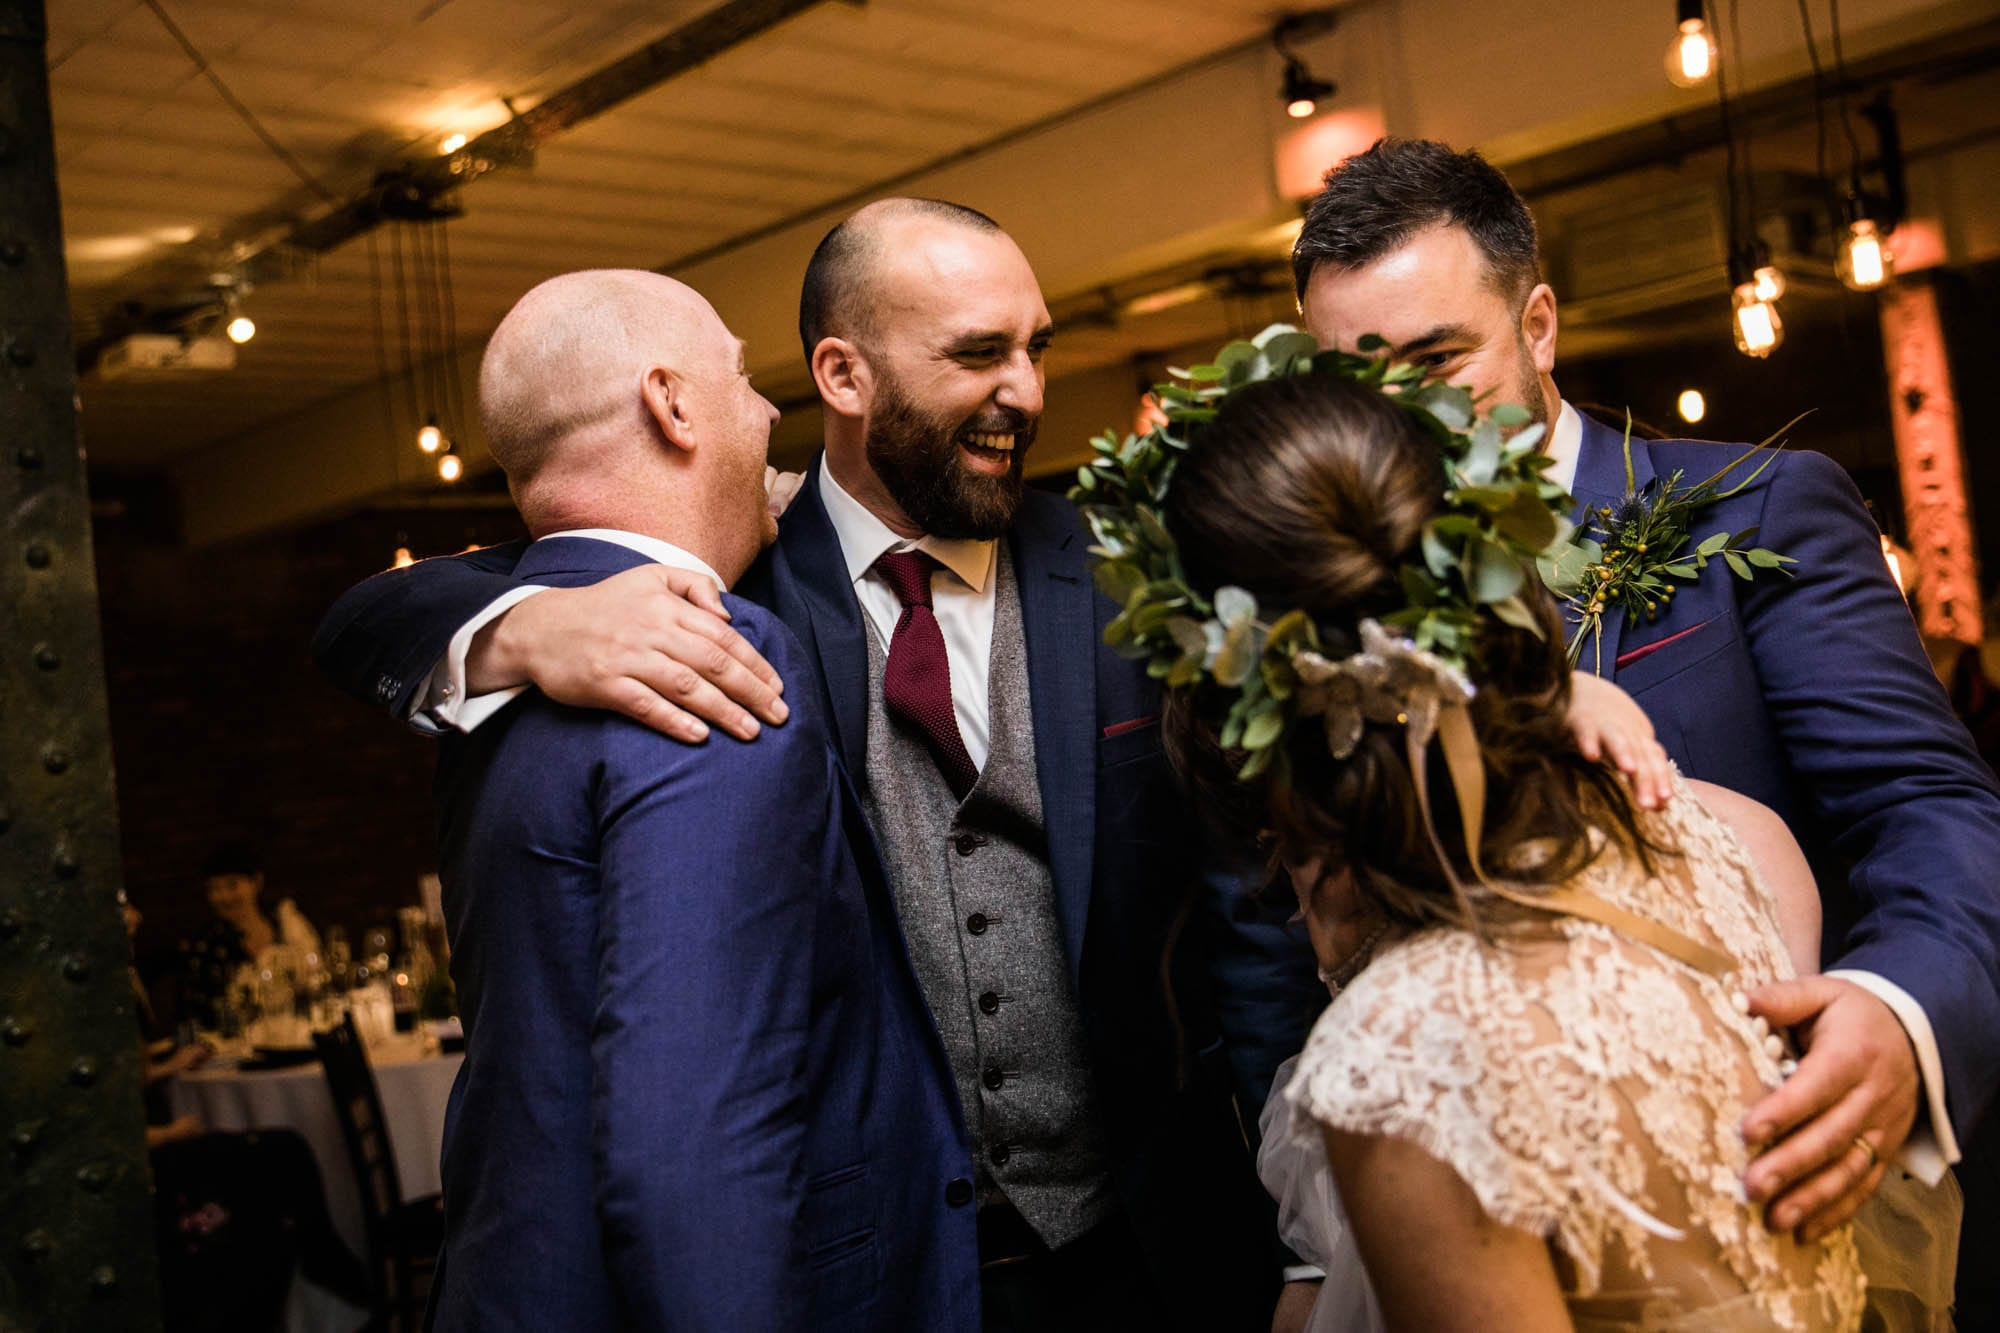 Victoria Warehouse Informal Wedding Photographer